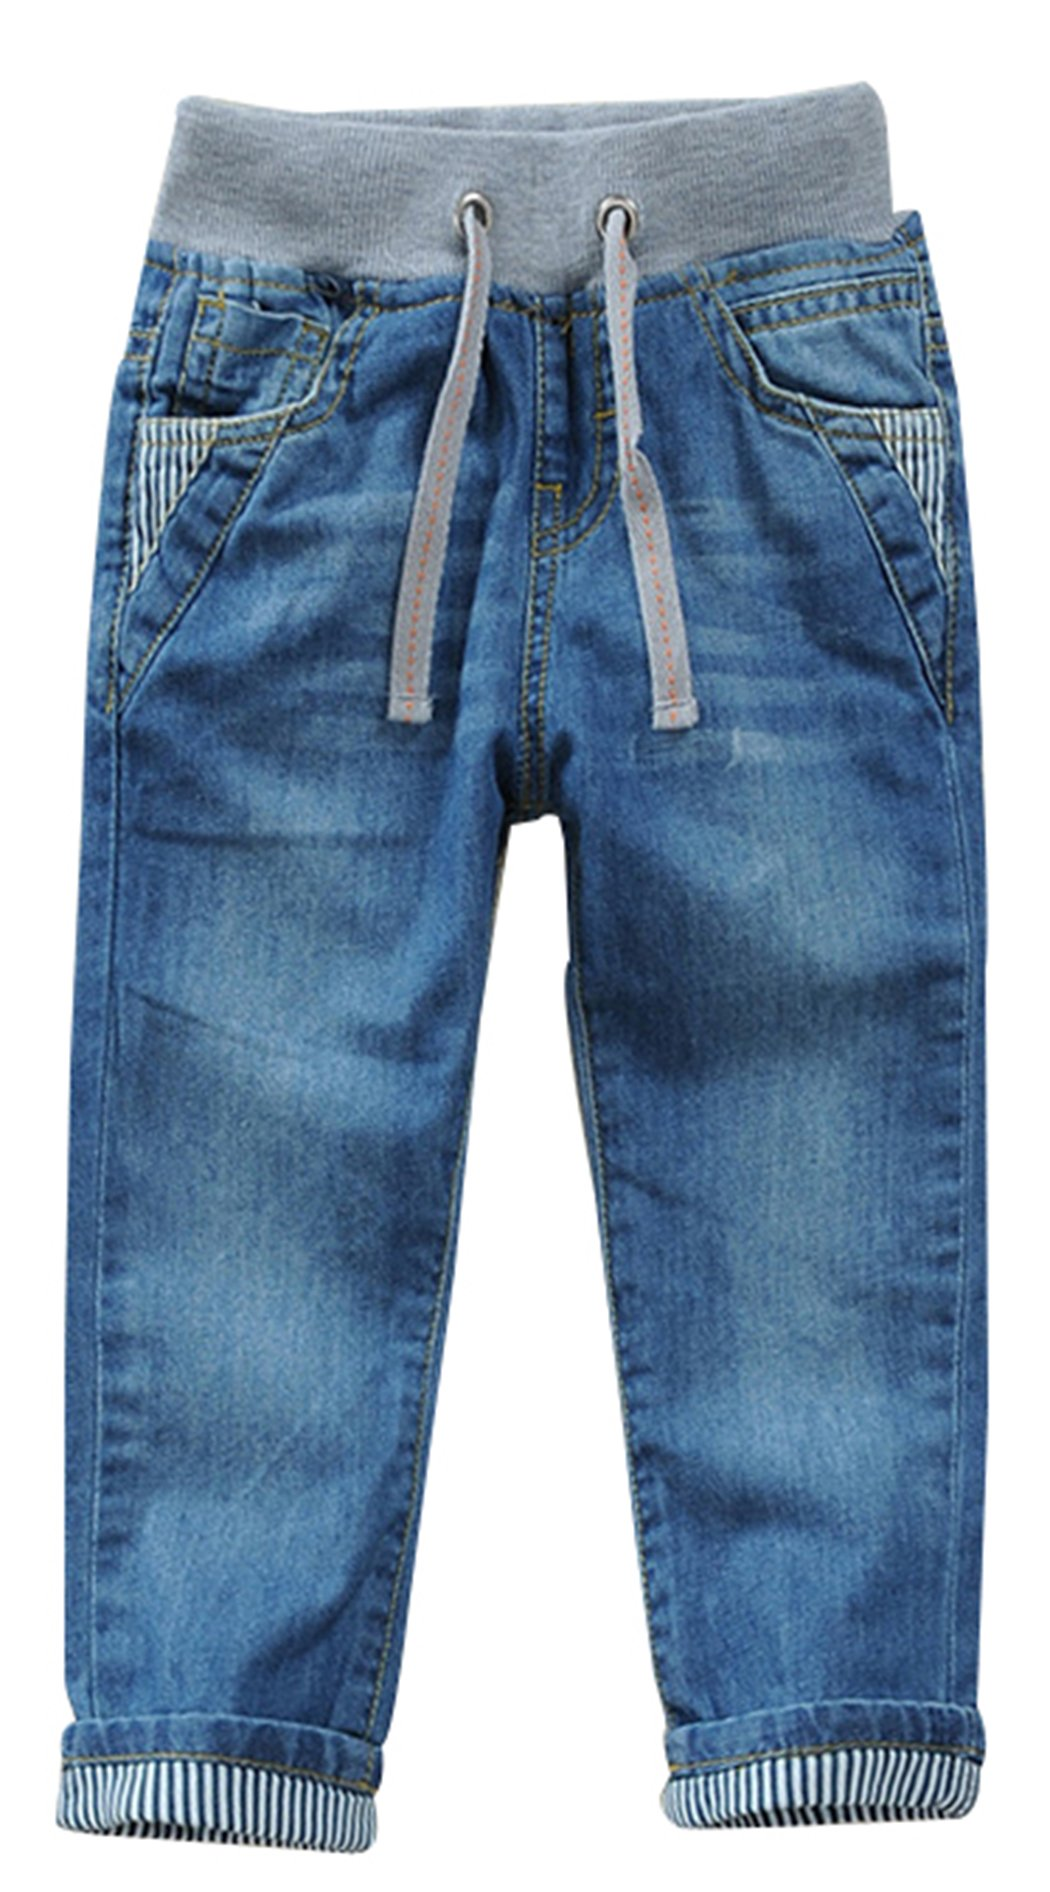 Toddler Kid Boy Elastic Mid Waist Washed Full Length Straight Pants Denim Jeans(A,6 Years)